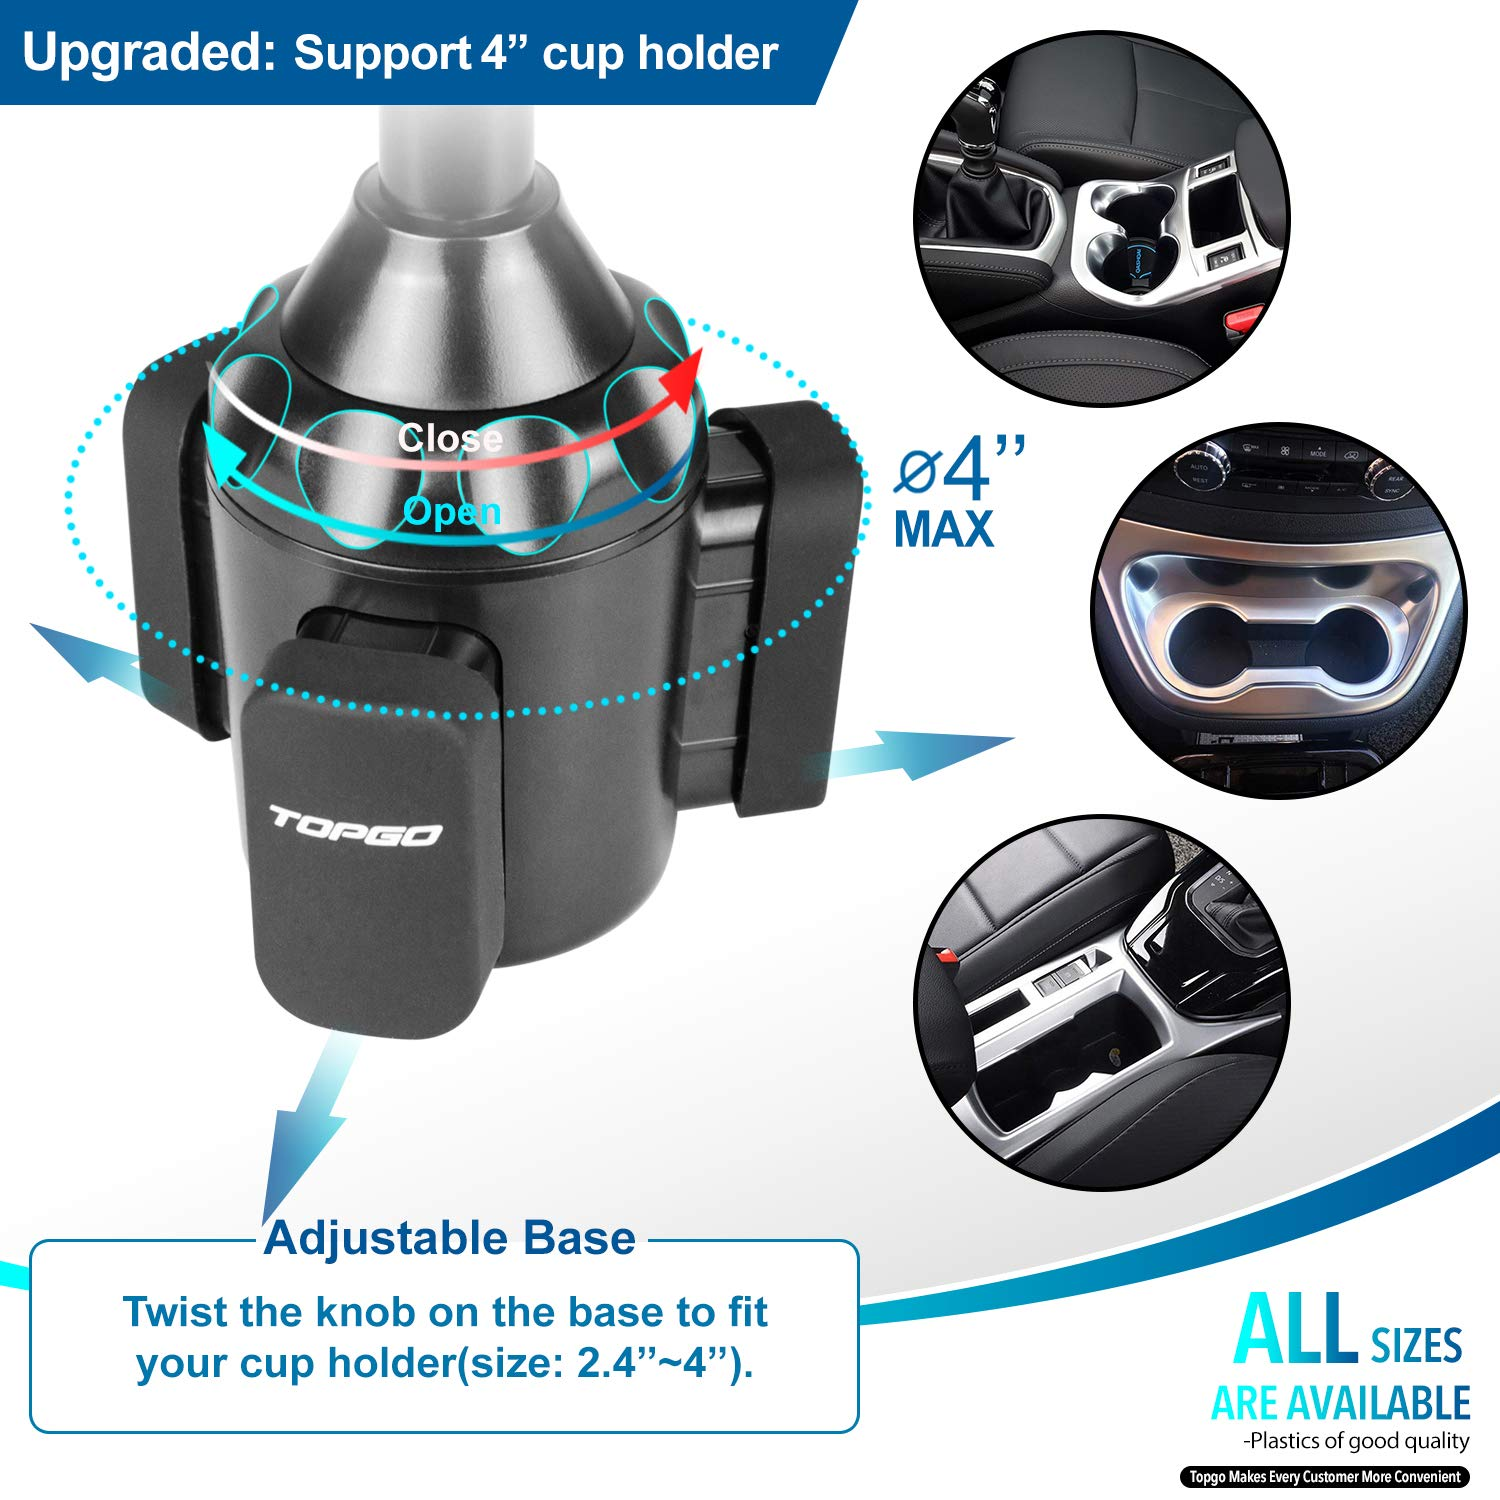 Car Cup Holder Phone Mount Adjustable Automobile Cup Holder Smart Phone Cradle Car Mount for iPhone XR//XS Max//X//8//7 Plus//6s//Samsung Galaxy S10+//Note 9//S8 Plus//S7 Edge Black Upgraded